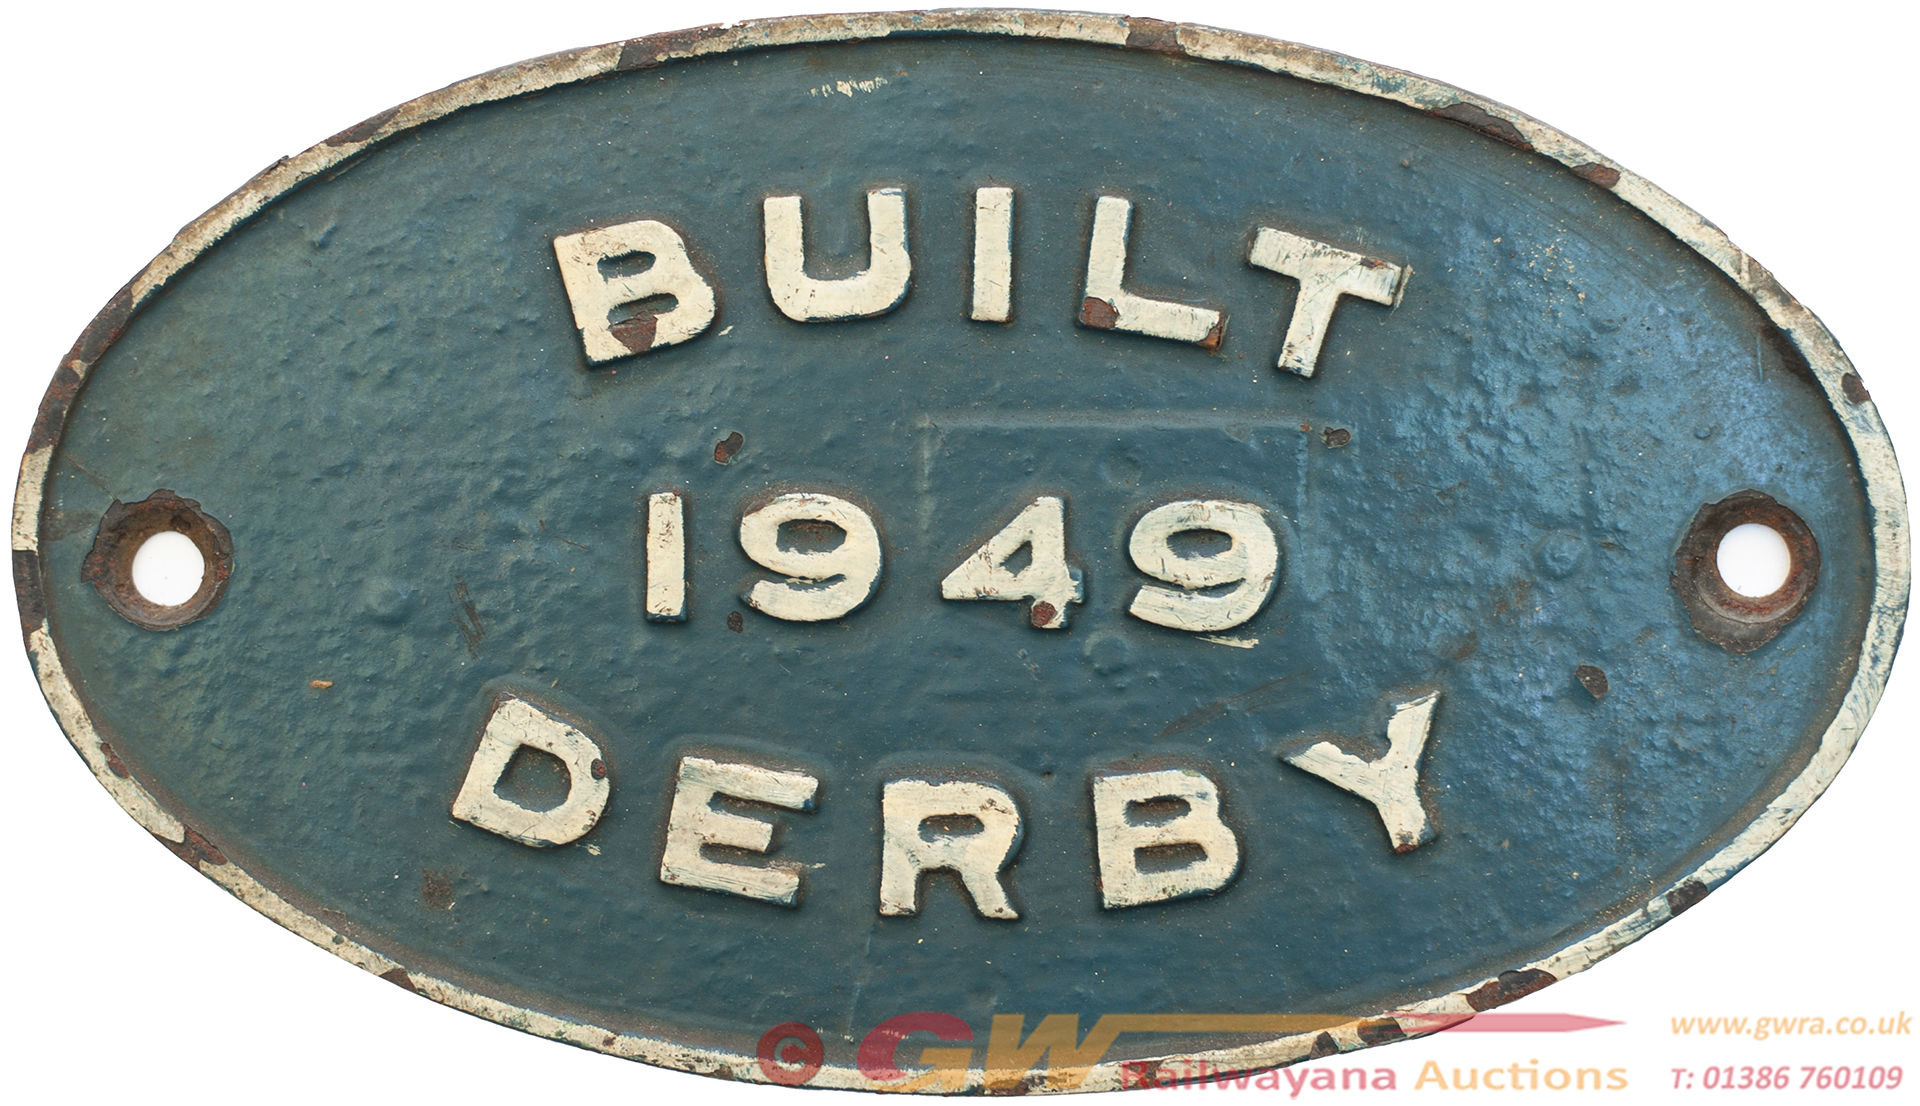 Worksplate BUILT 1949 DERBY Ex British Railways